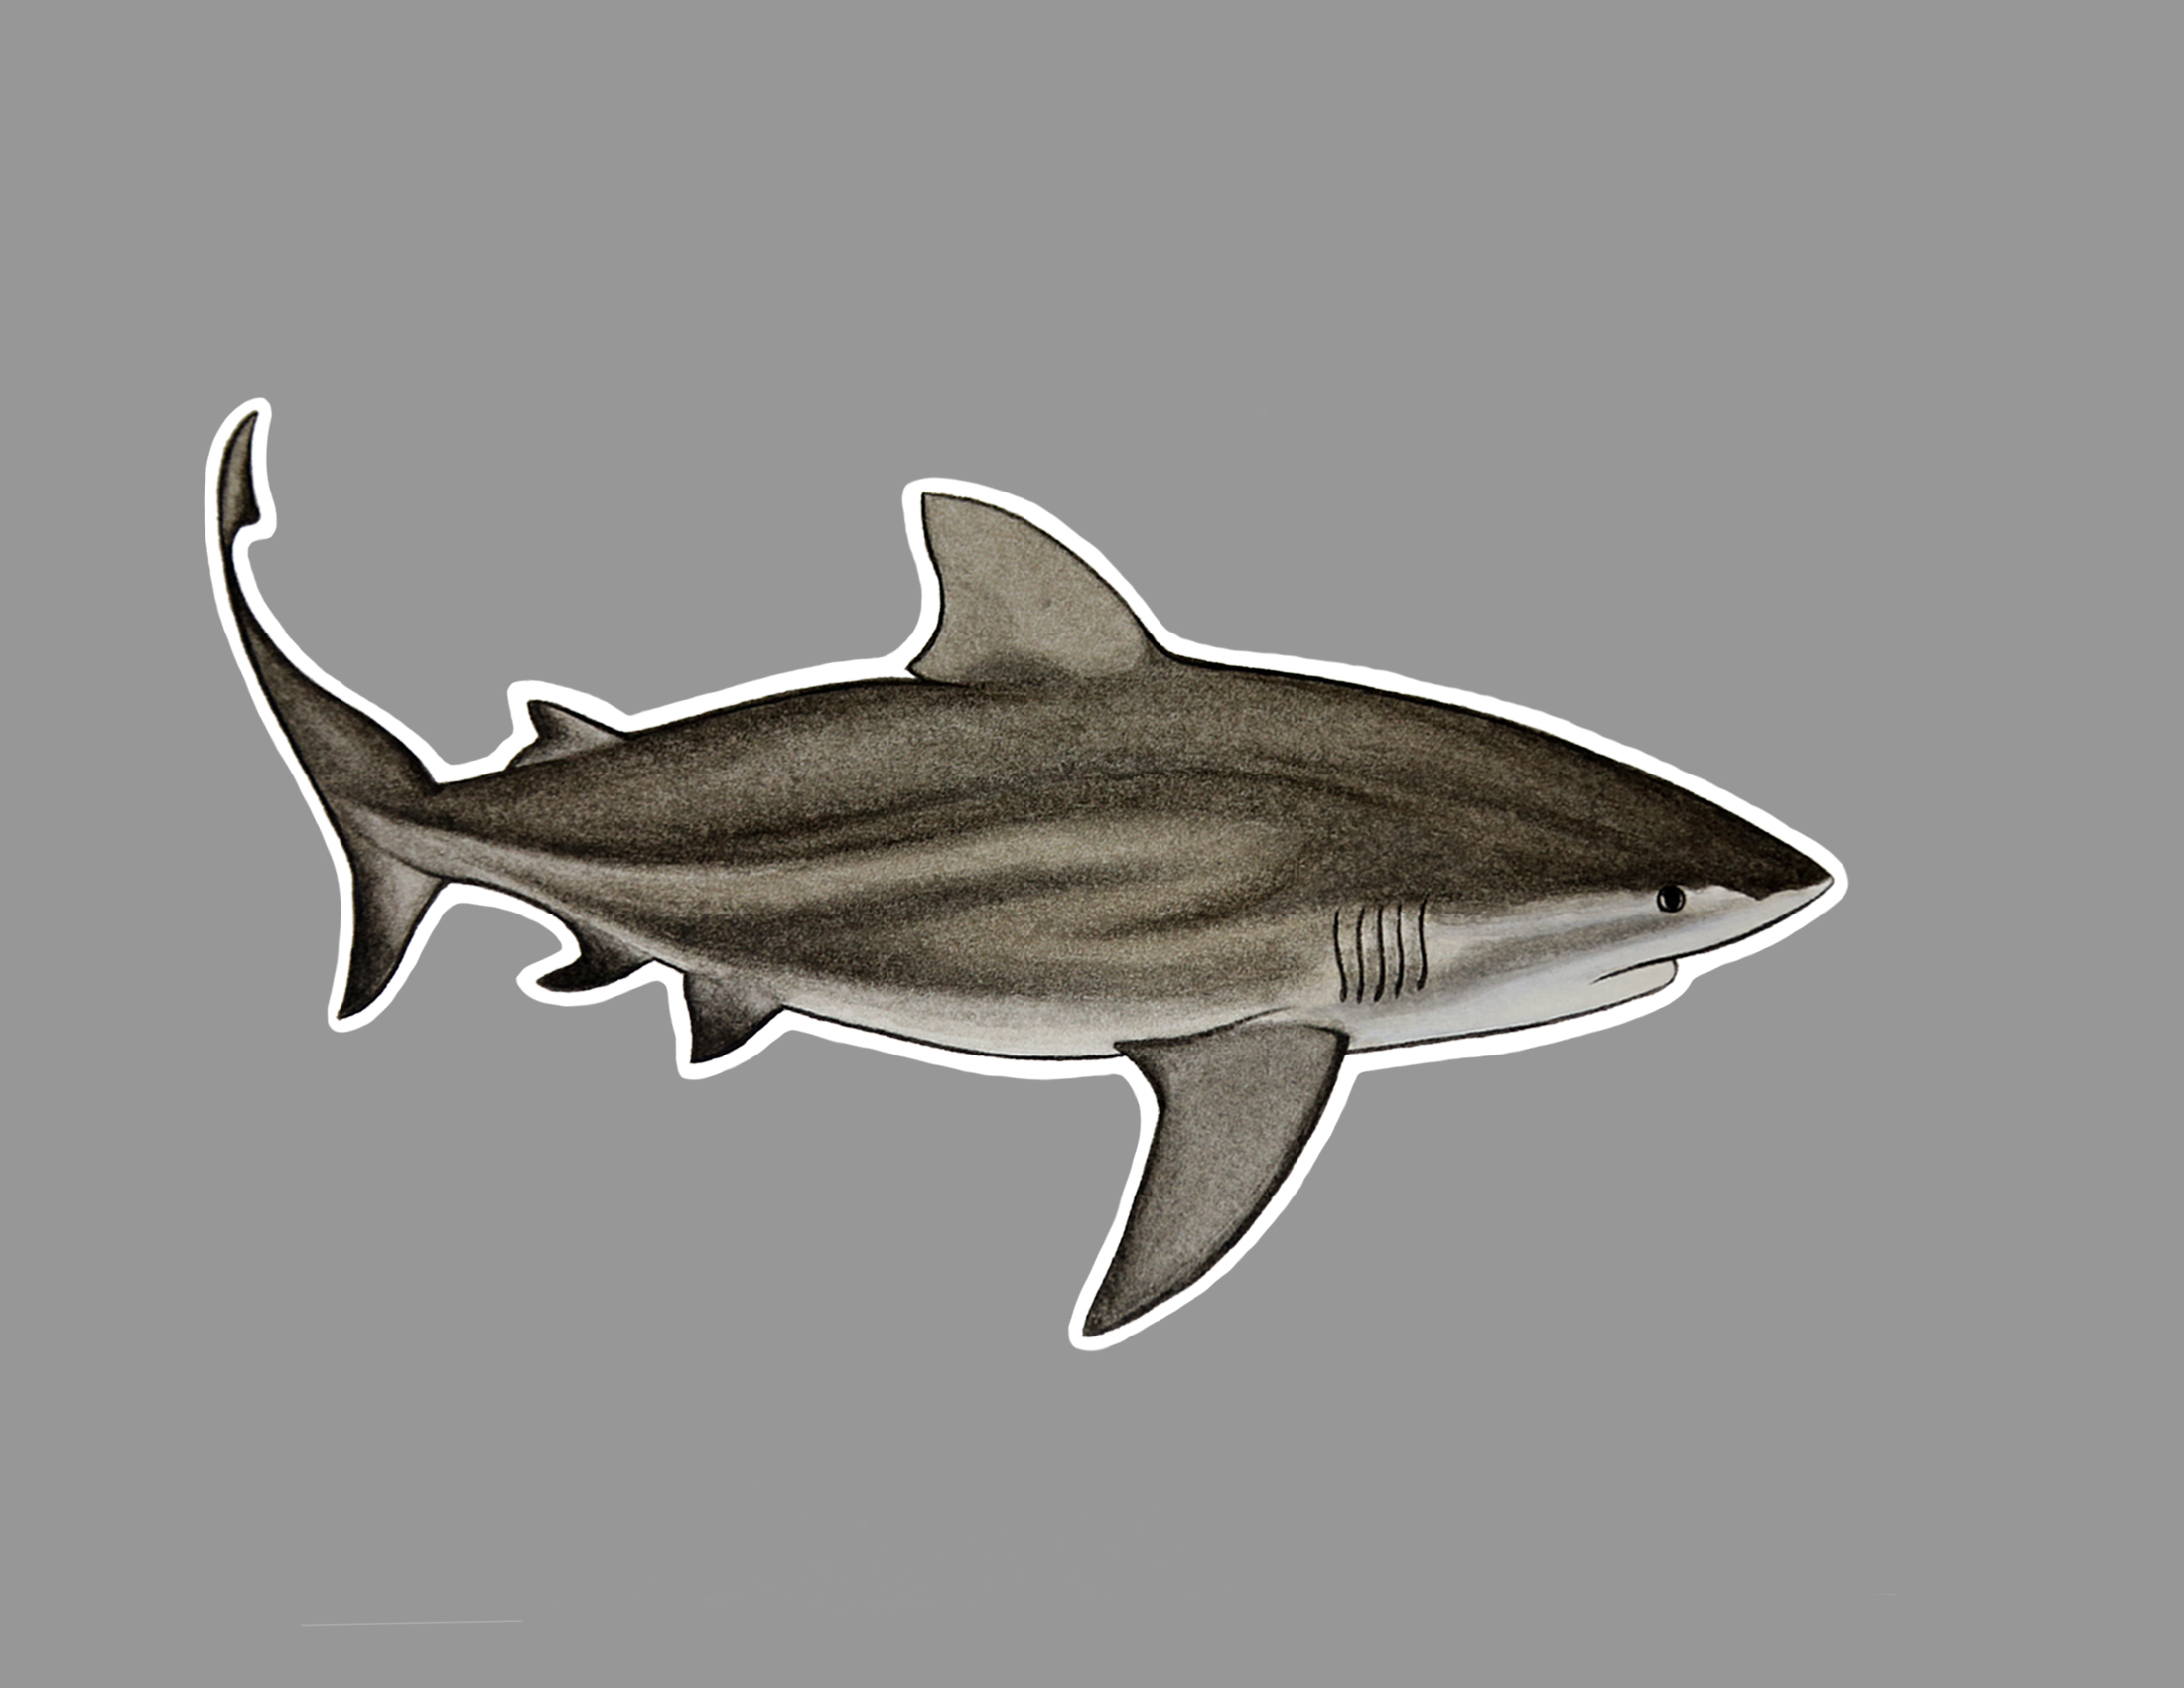 bull shark sticker.jpg